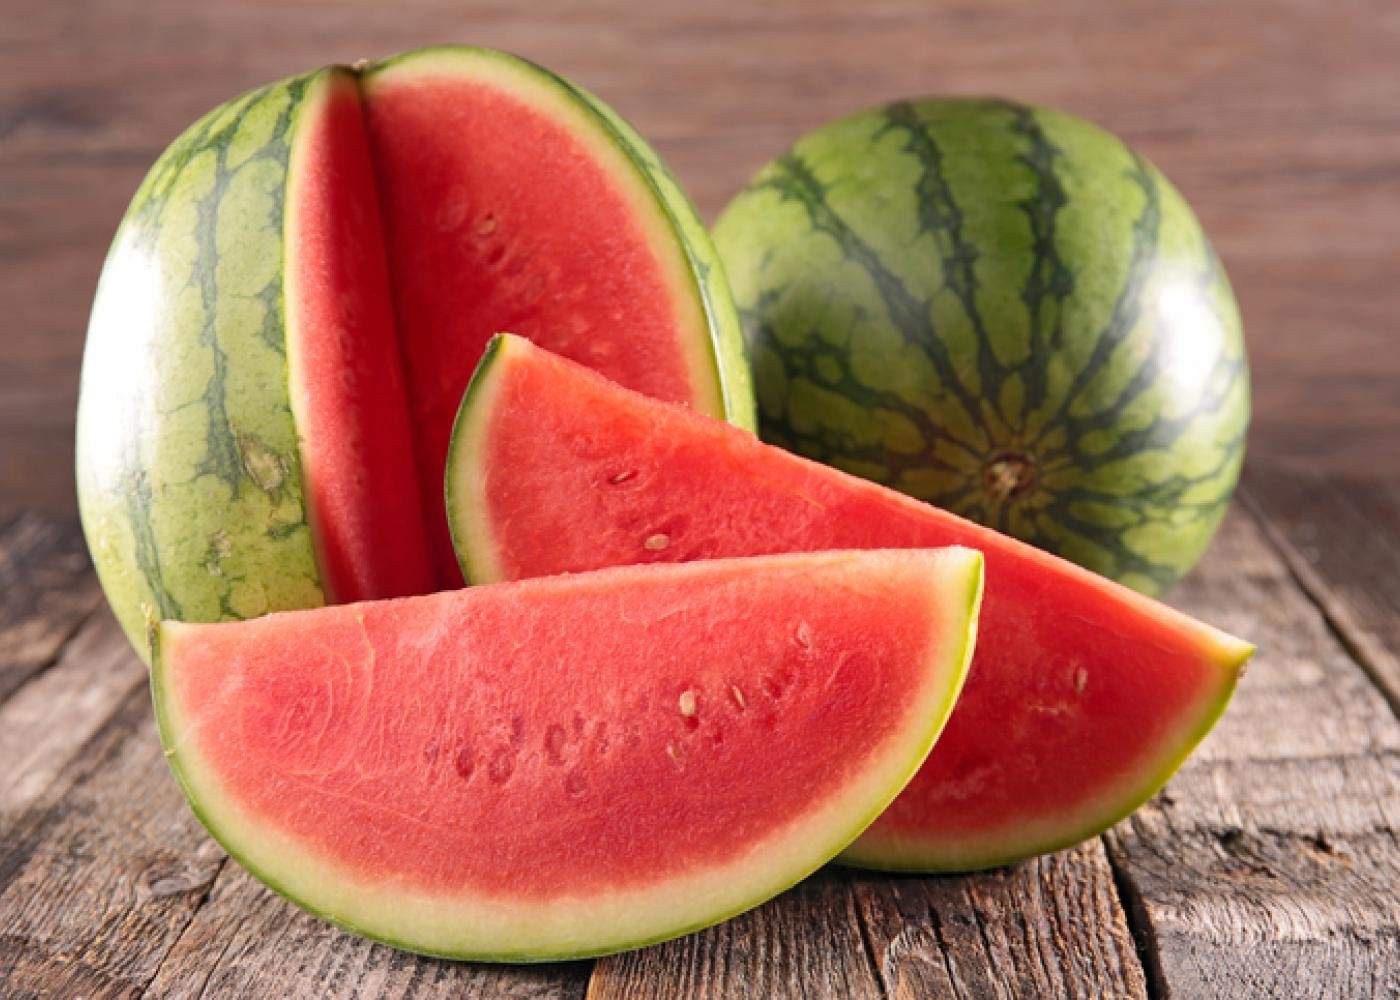 Planthub Water Melon Seed, Giant Sugar Baby Watermelon Fruit Seed - Pack of 50 Seeds.: Amazon.in: Garden & Outdoors